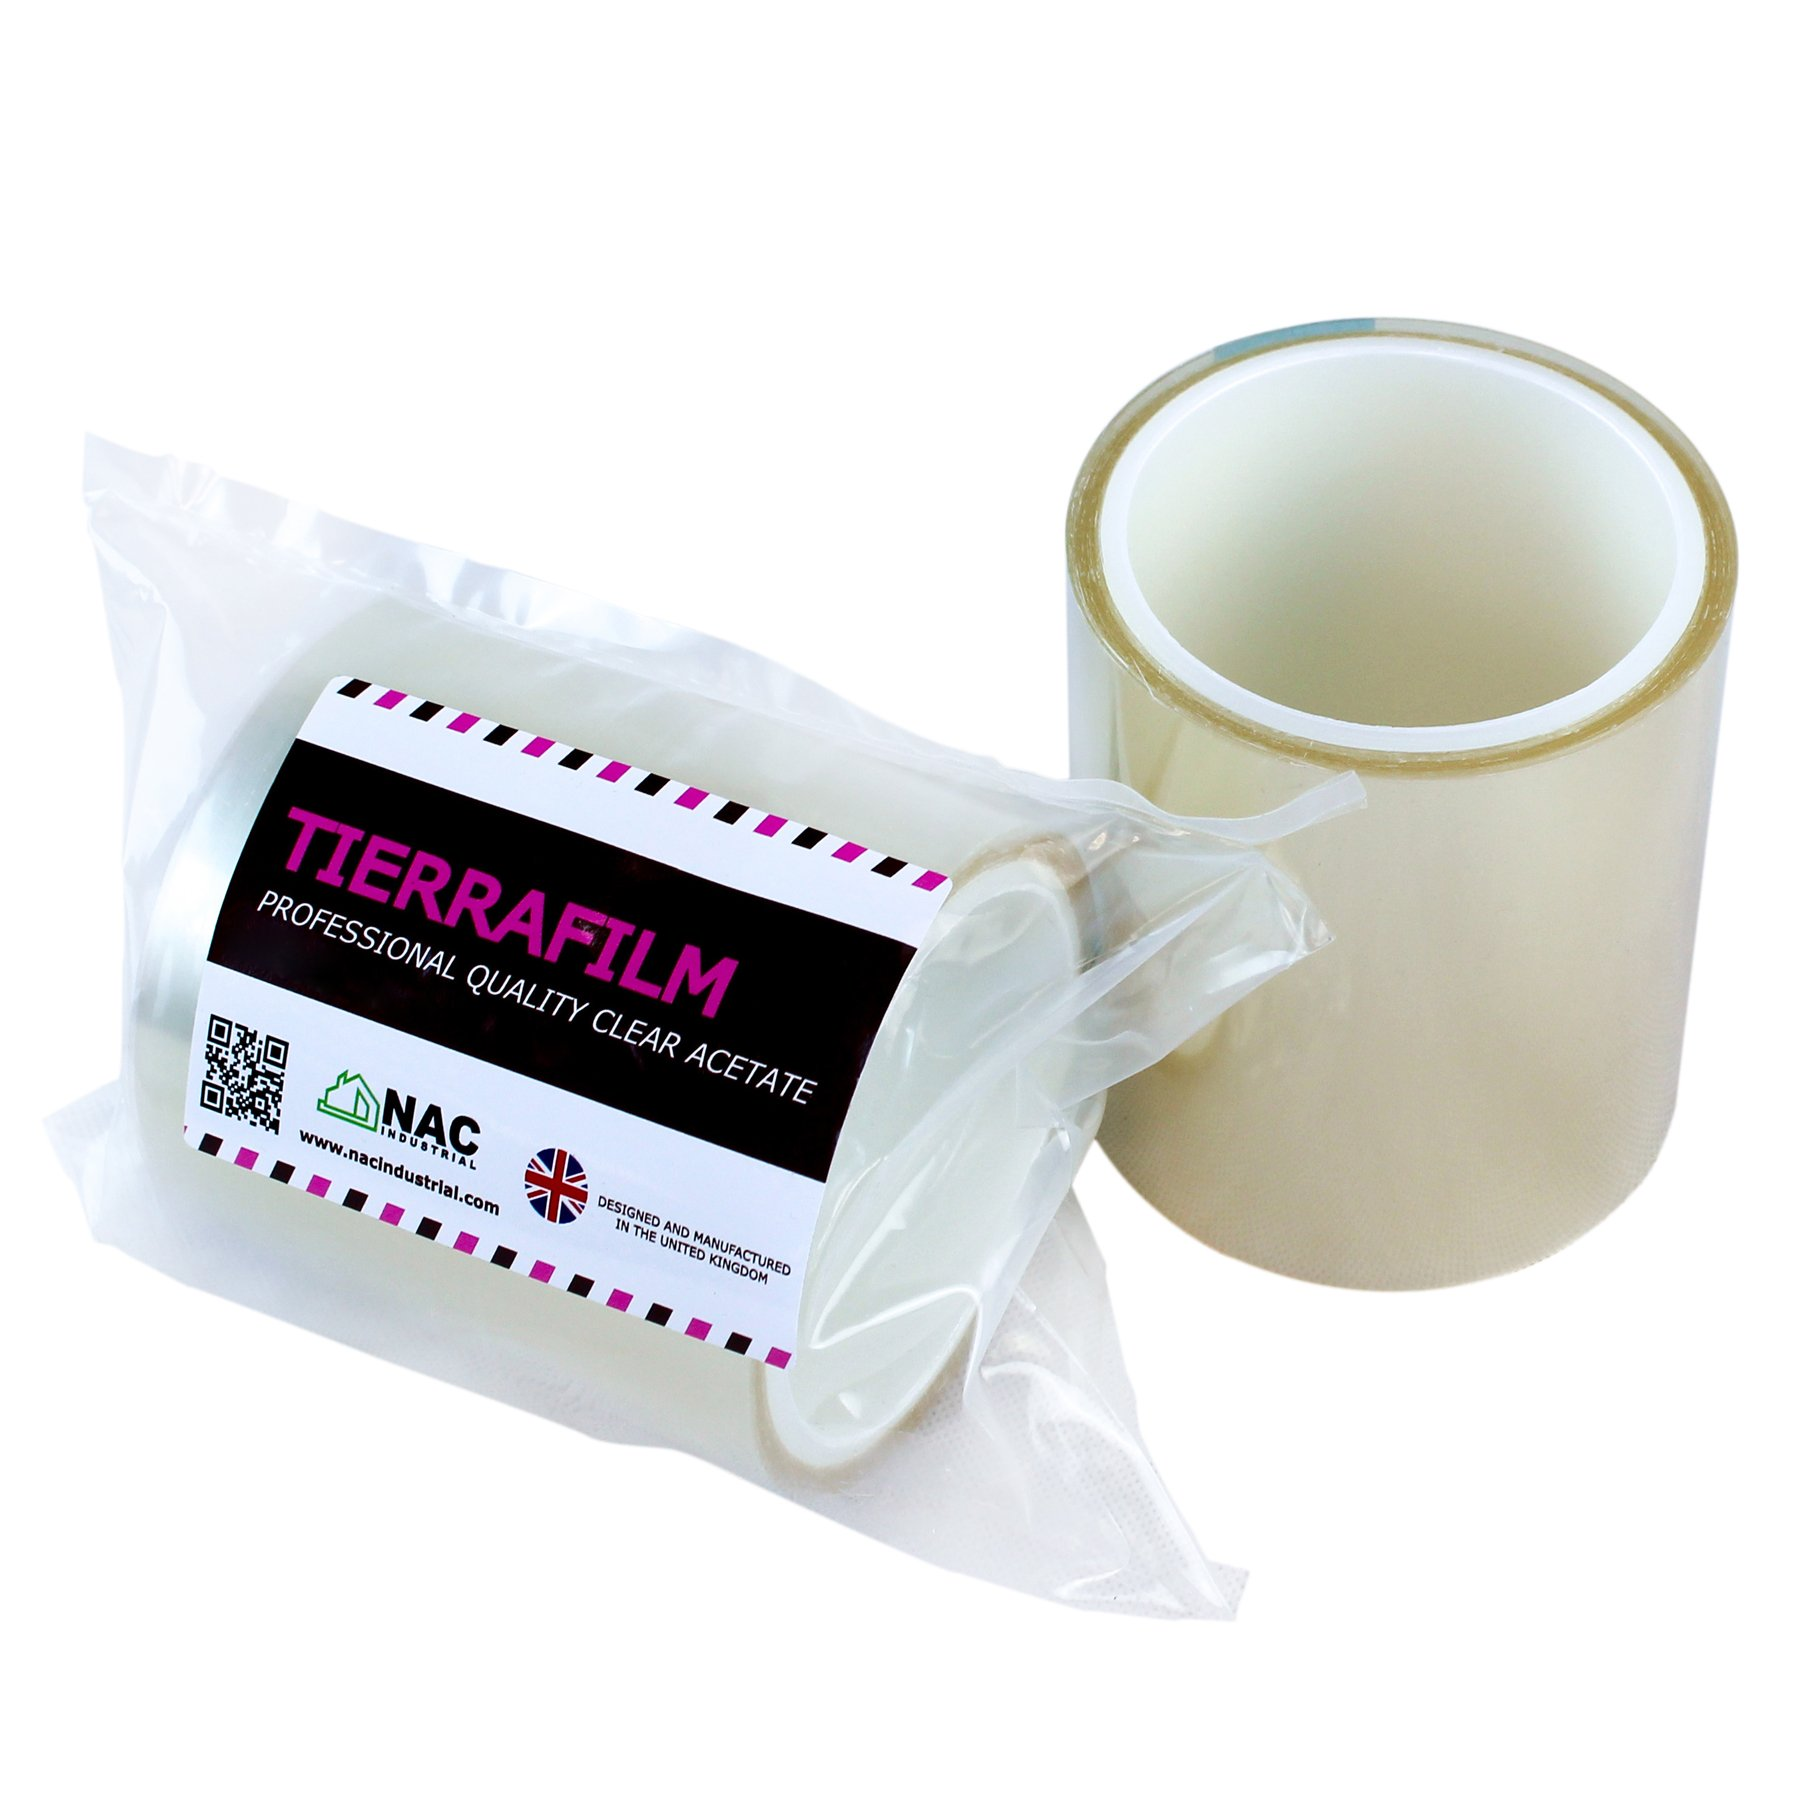 TIERRAFILM Cake Collar, Chocolate and Cake Decorating Acetate Sheet CLEAR ACETATE ROLL - Various Sizes (3'' x 16 feet 125 micron)